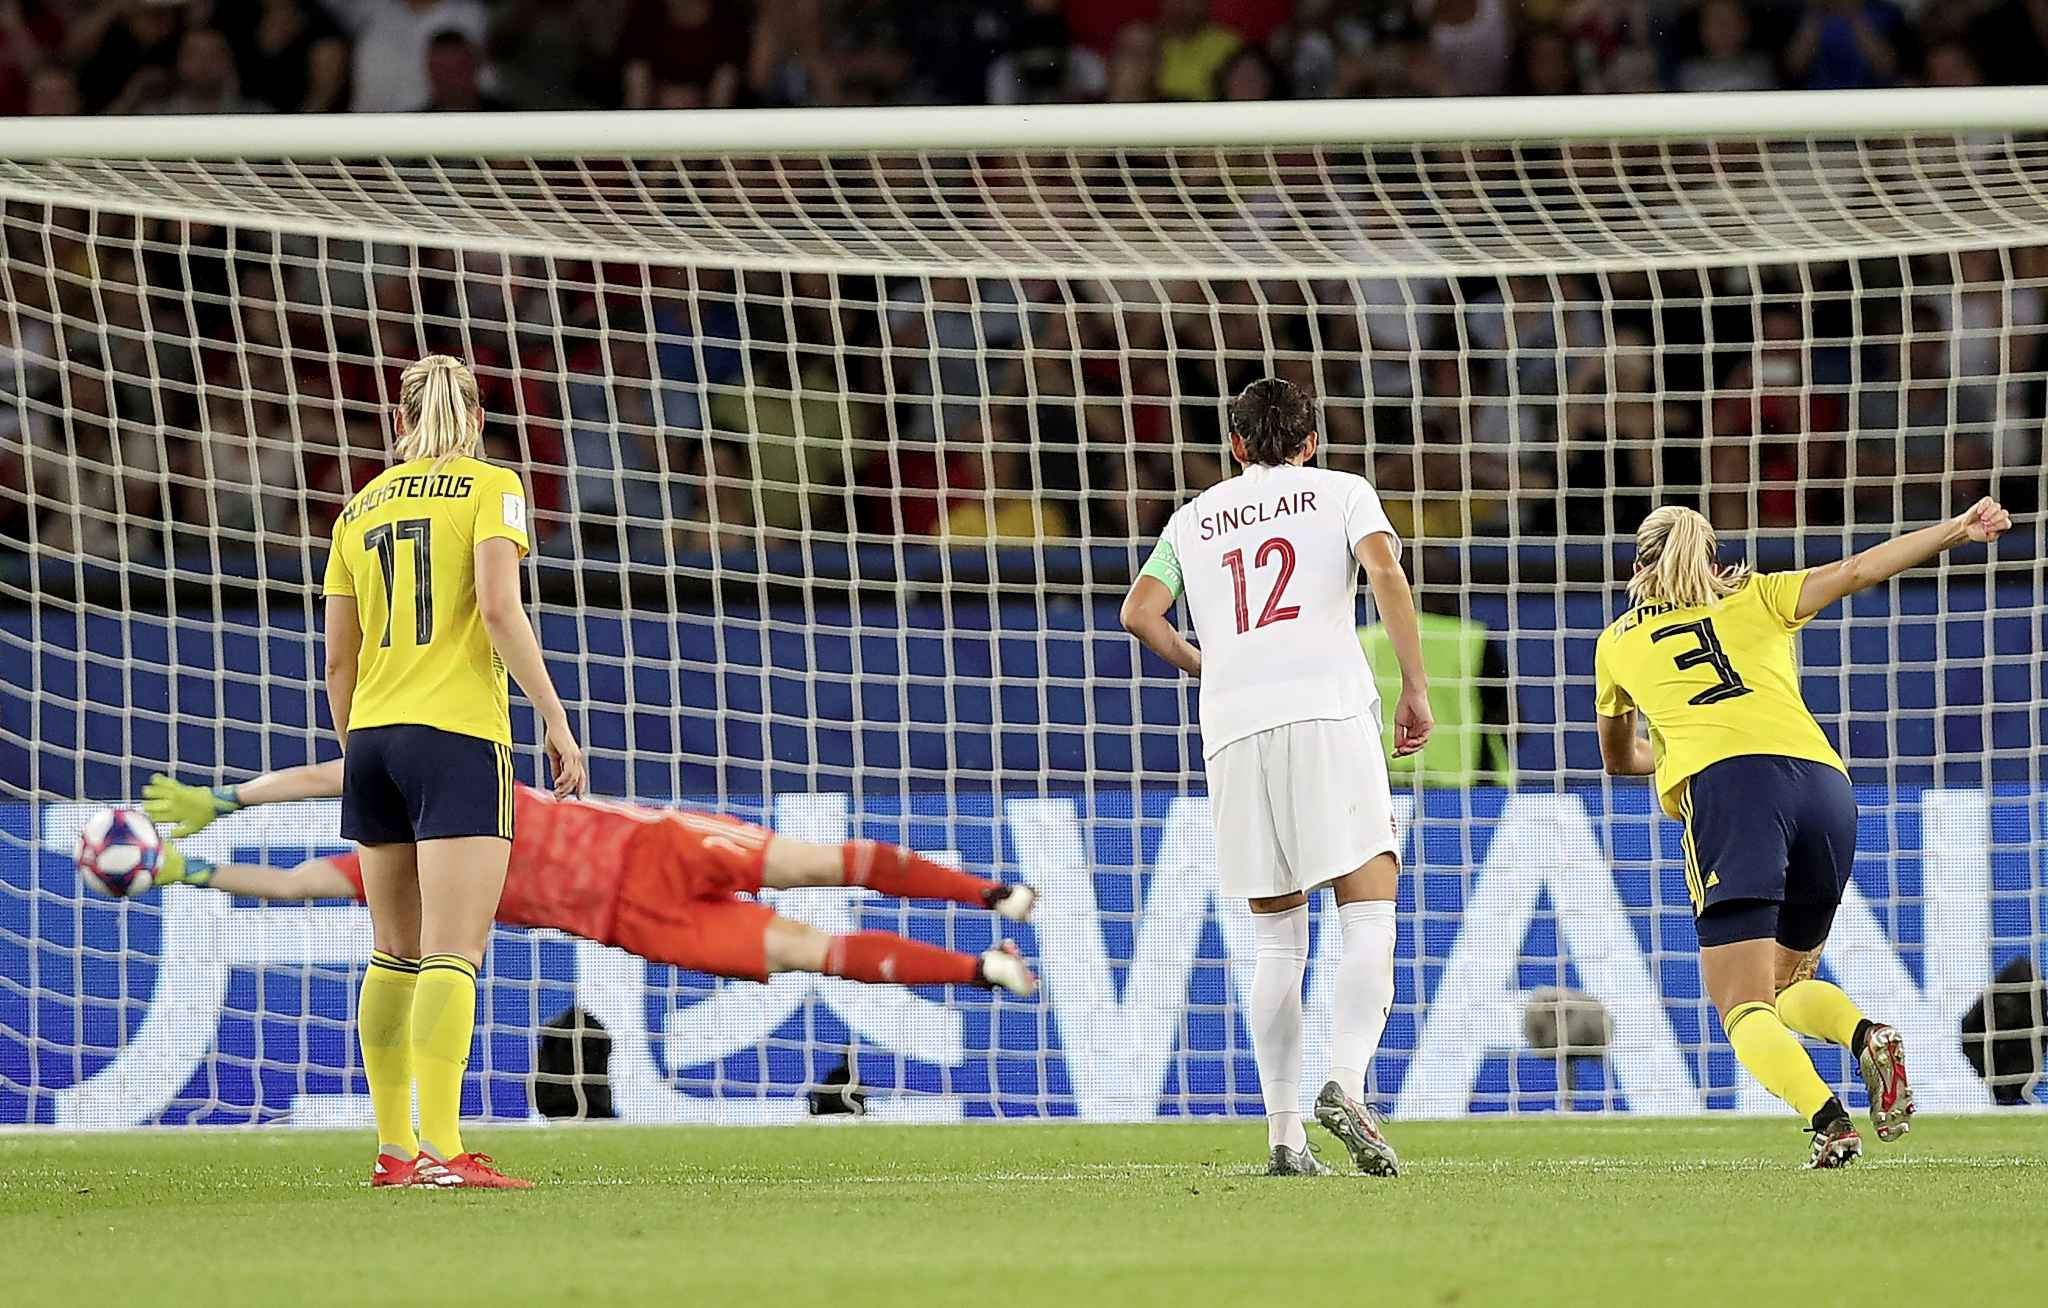 Sweden goalkeeper Hedvig Lindahl, left, makes a save on a penalty shot during the Women's World Cup match between Canada and Sweden as team Canada captain Christine Sinclair looks on, in Paris, Monday.